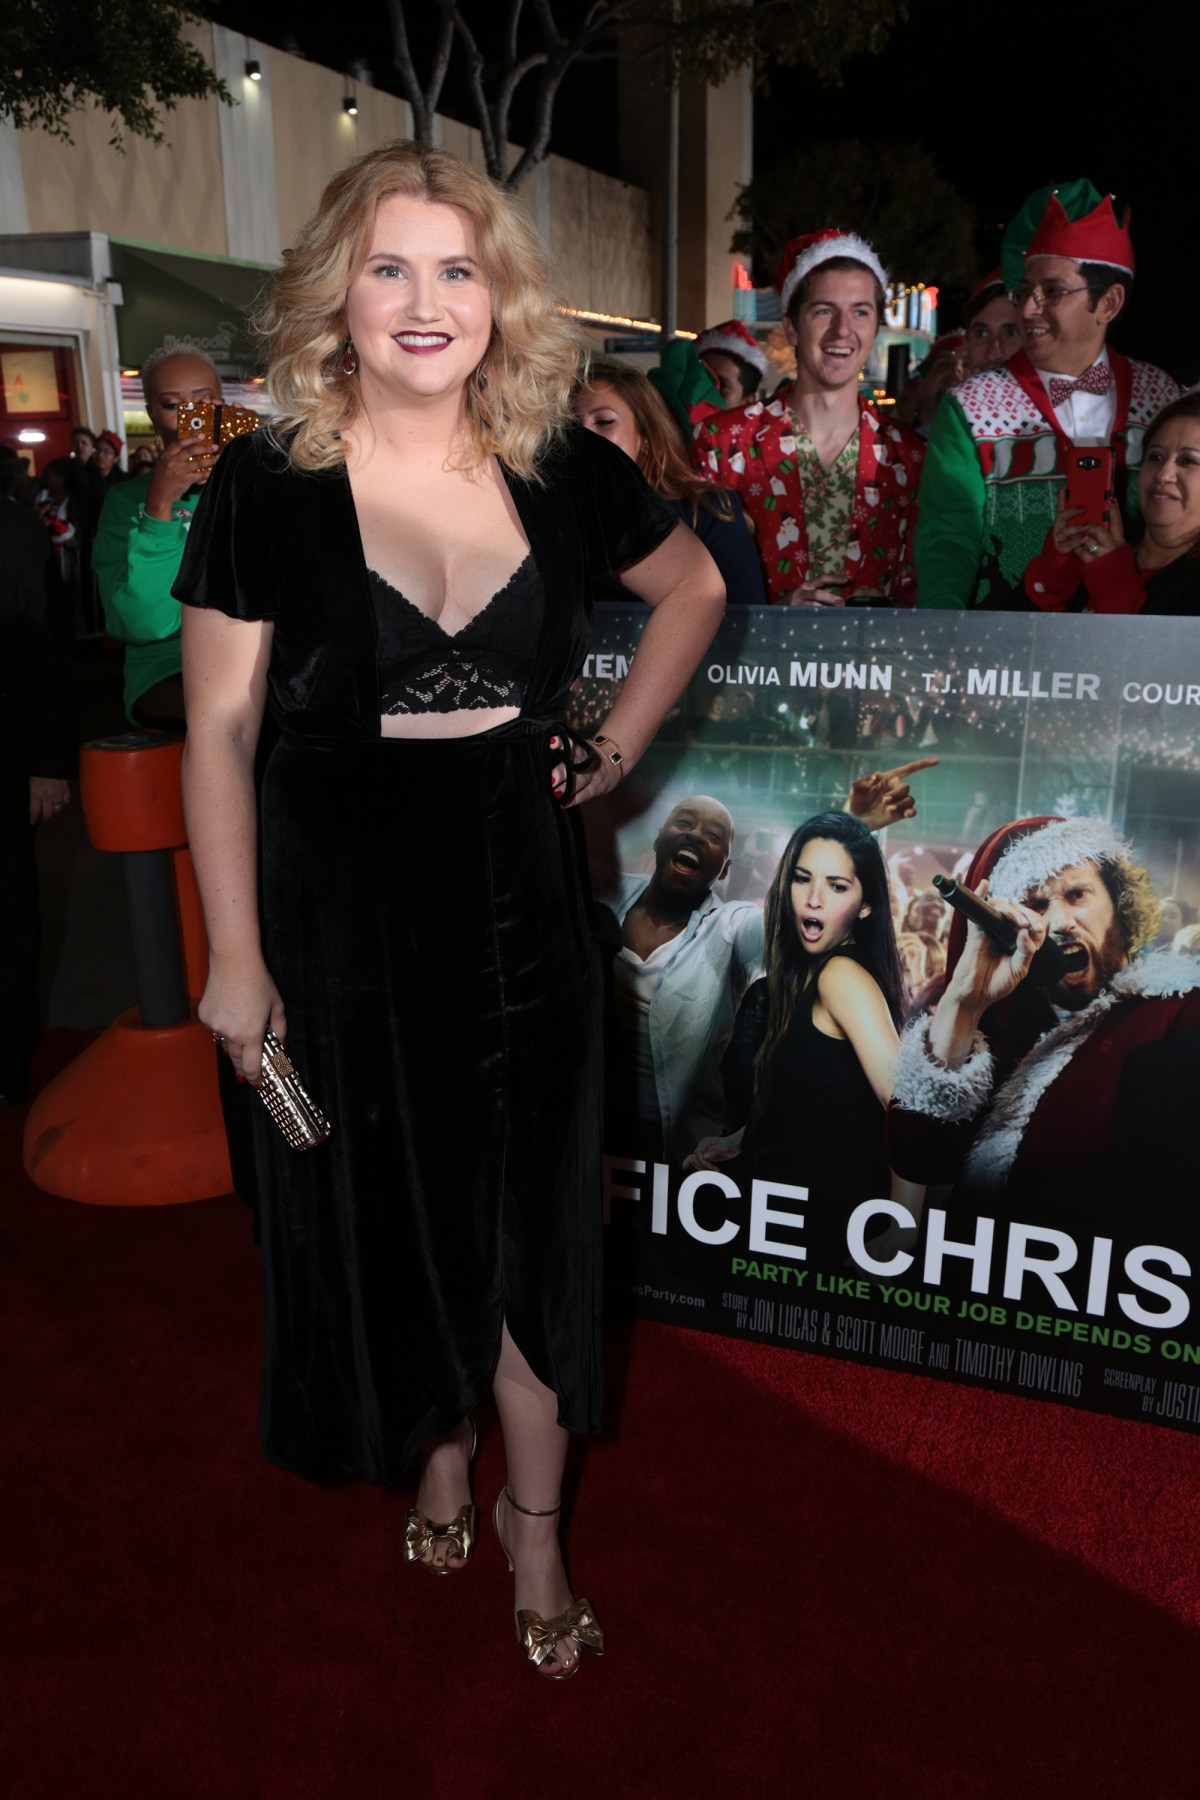 """Jillian Bell poses as Paramount Pictures presents the Los Angeles premiere of """"Office Christmas Party"""" at the Regency Village Theater in Los Angeles, CA on Wednesday, December 7, 2016  (Photo: Alex J. Berliner / ABImages)"""